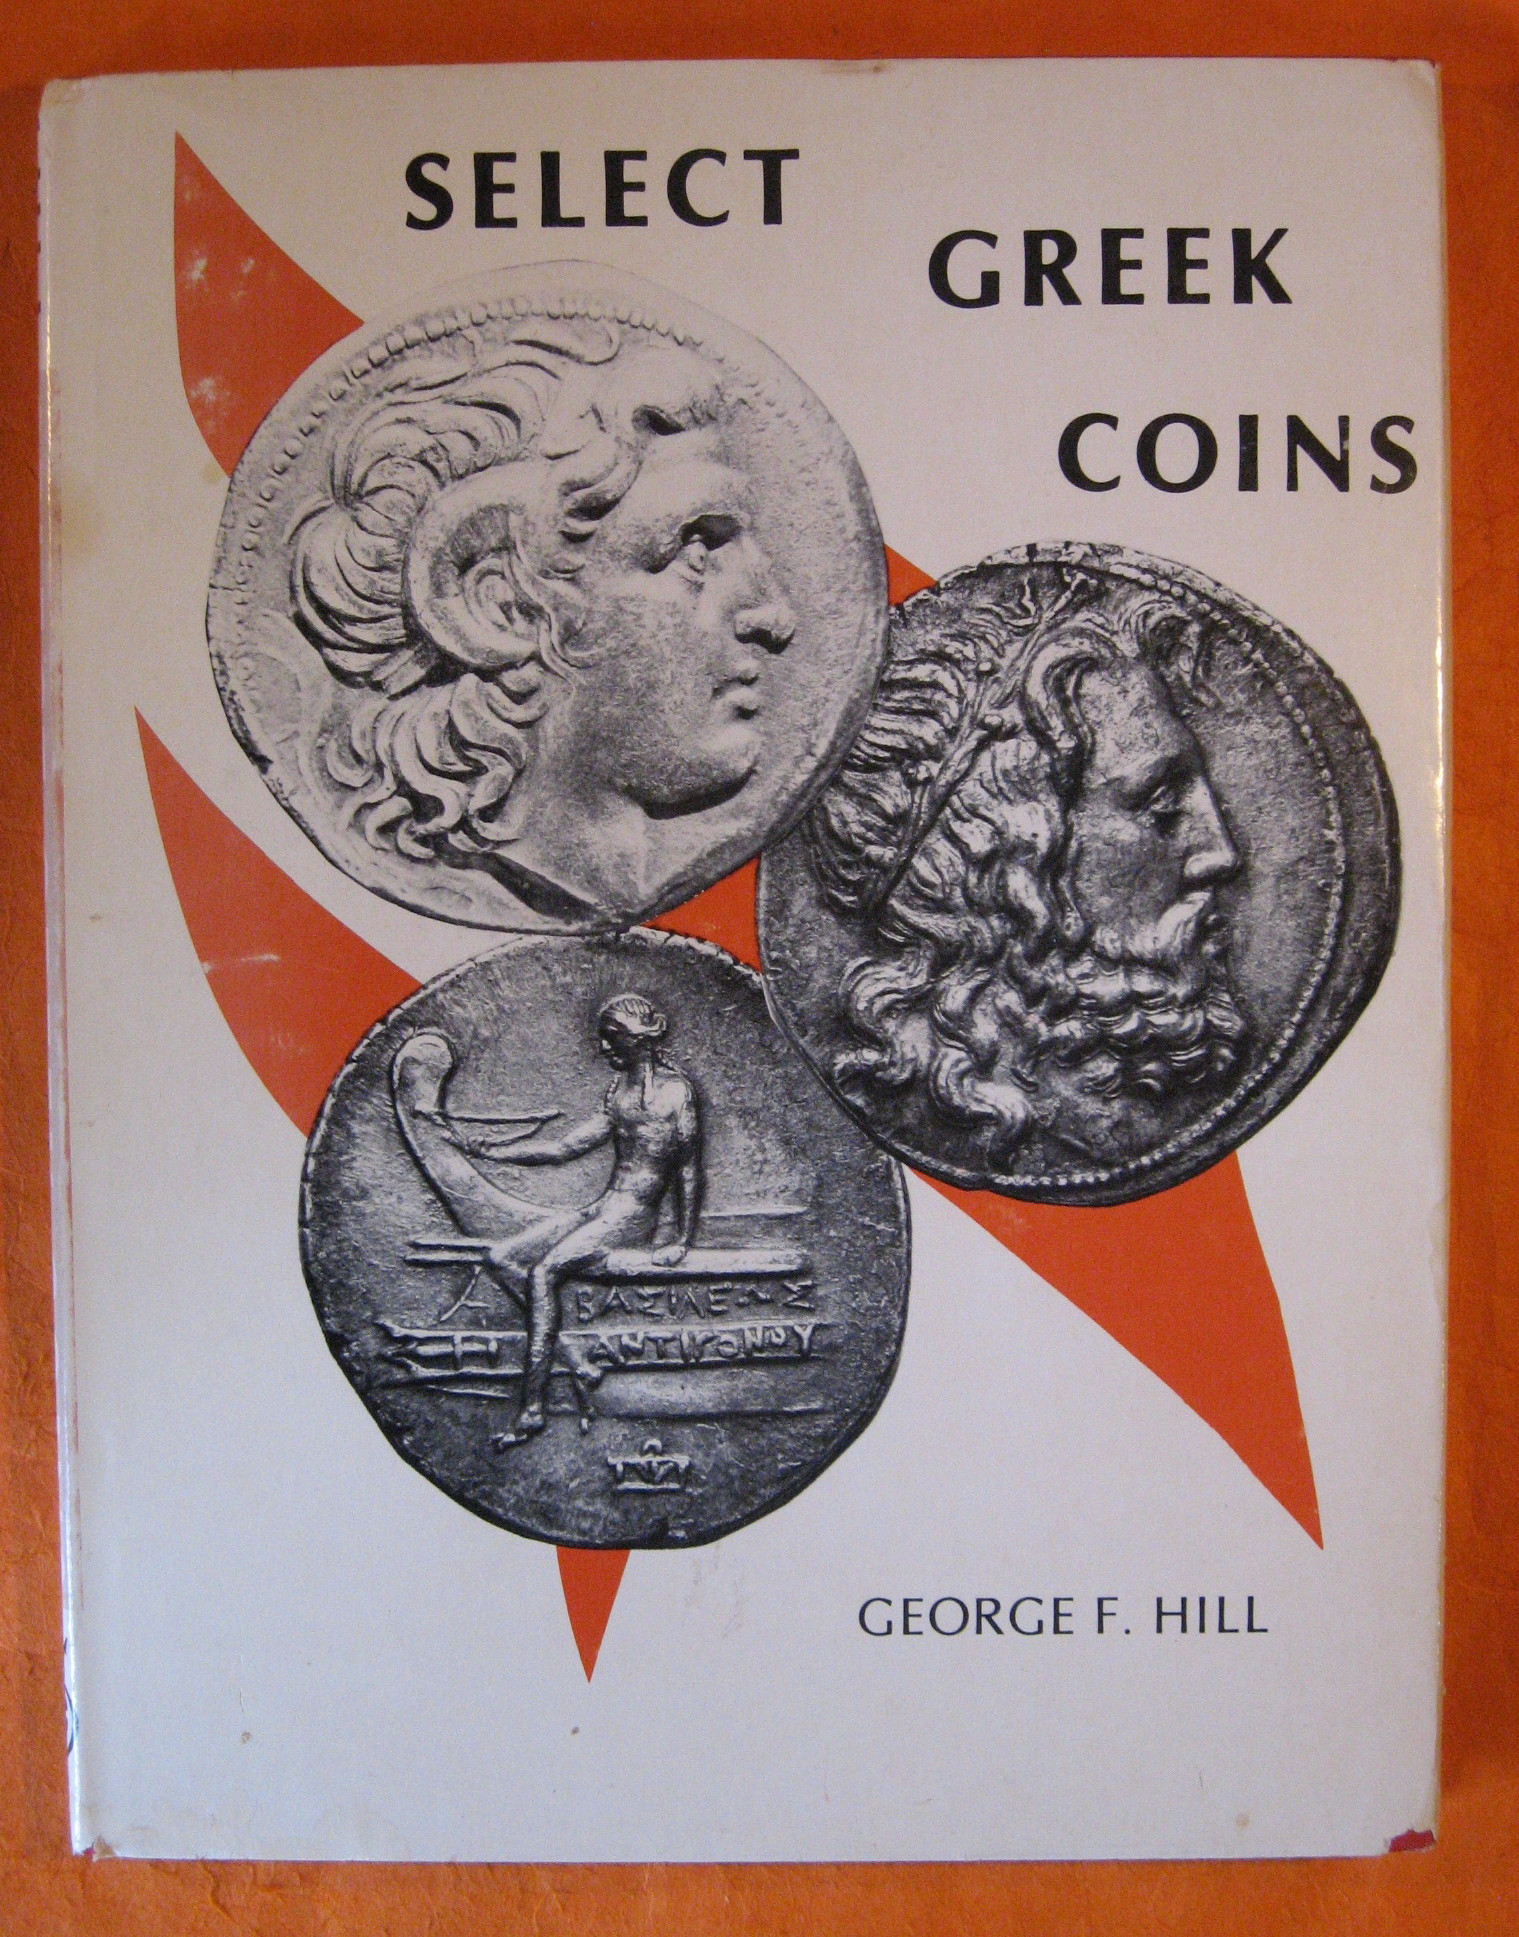 Select Greek Coins: a Series of Enlargements illustrated and Described, George F. Hill (keeper of Coins and medals, British museum)